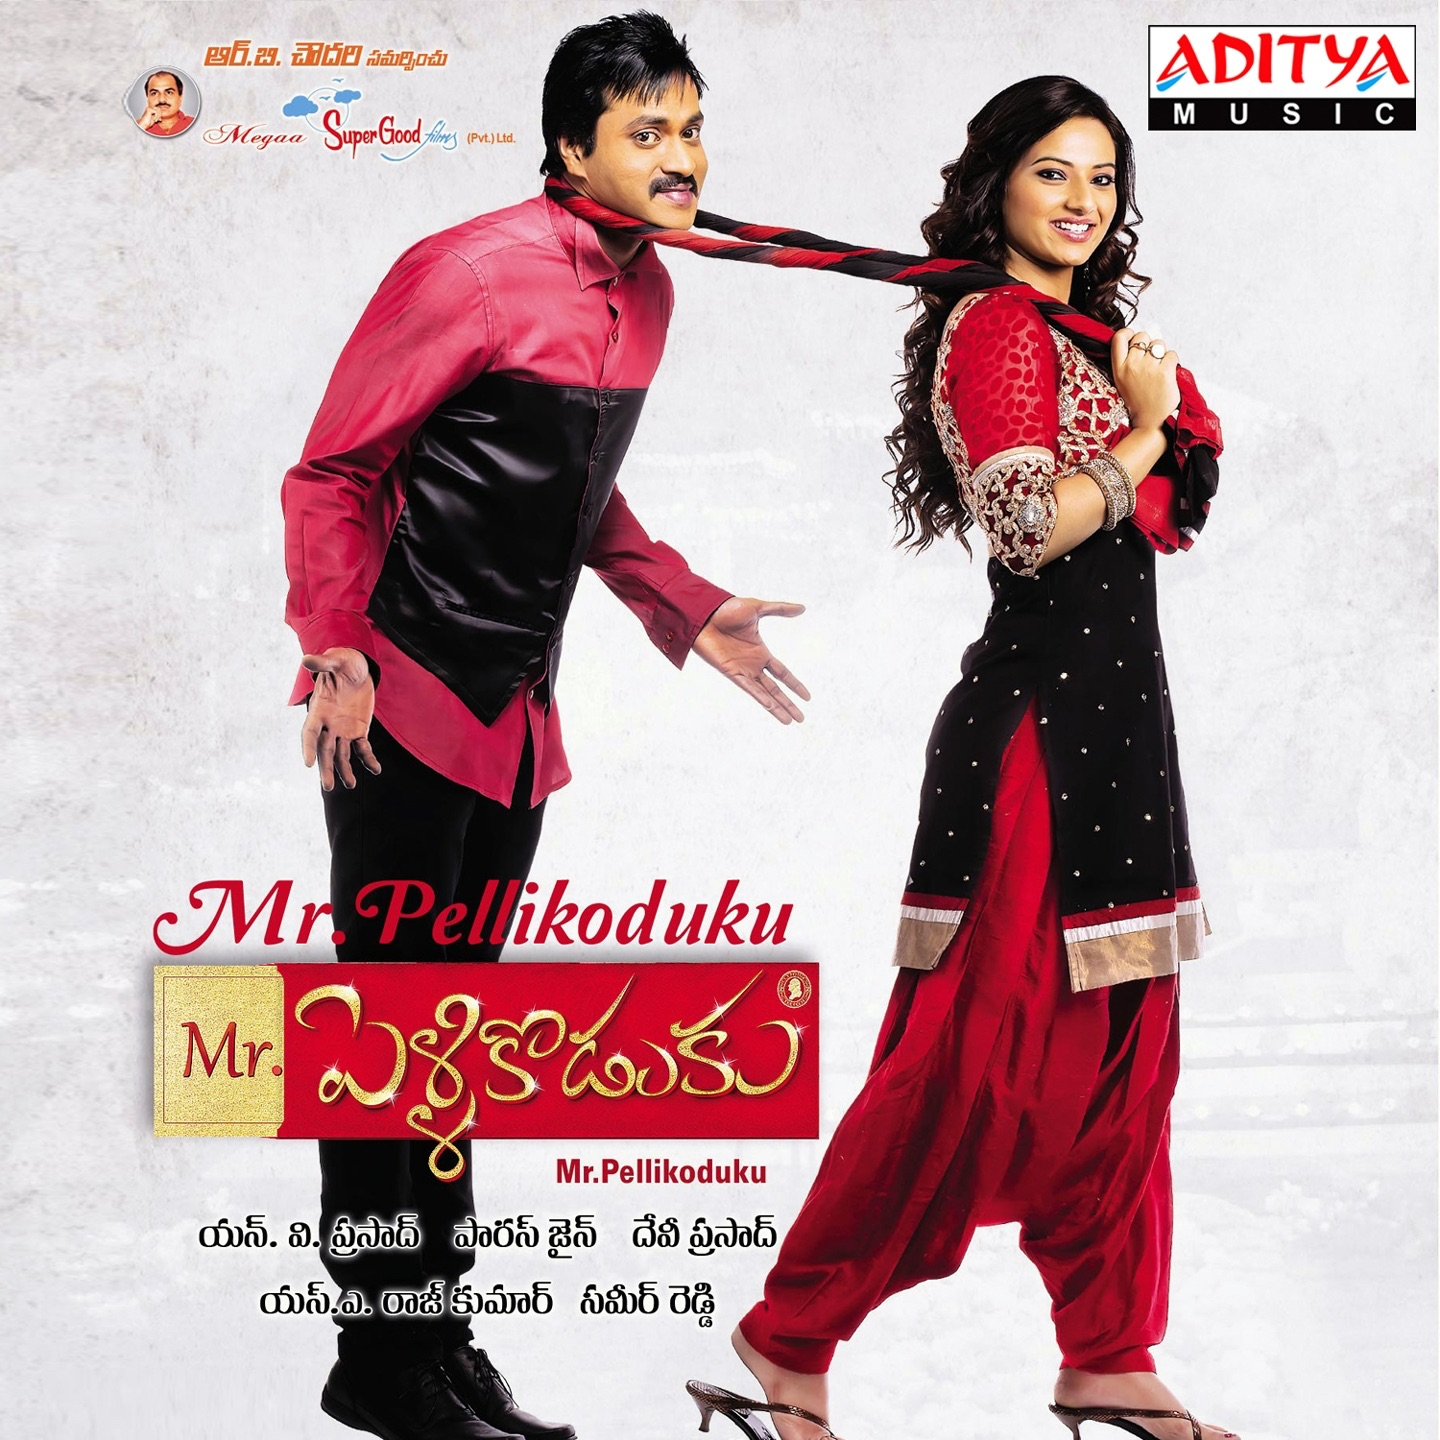 A Rajkumar Mp3 Songs Free Download